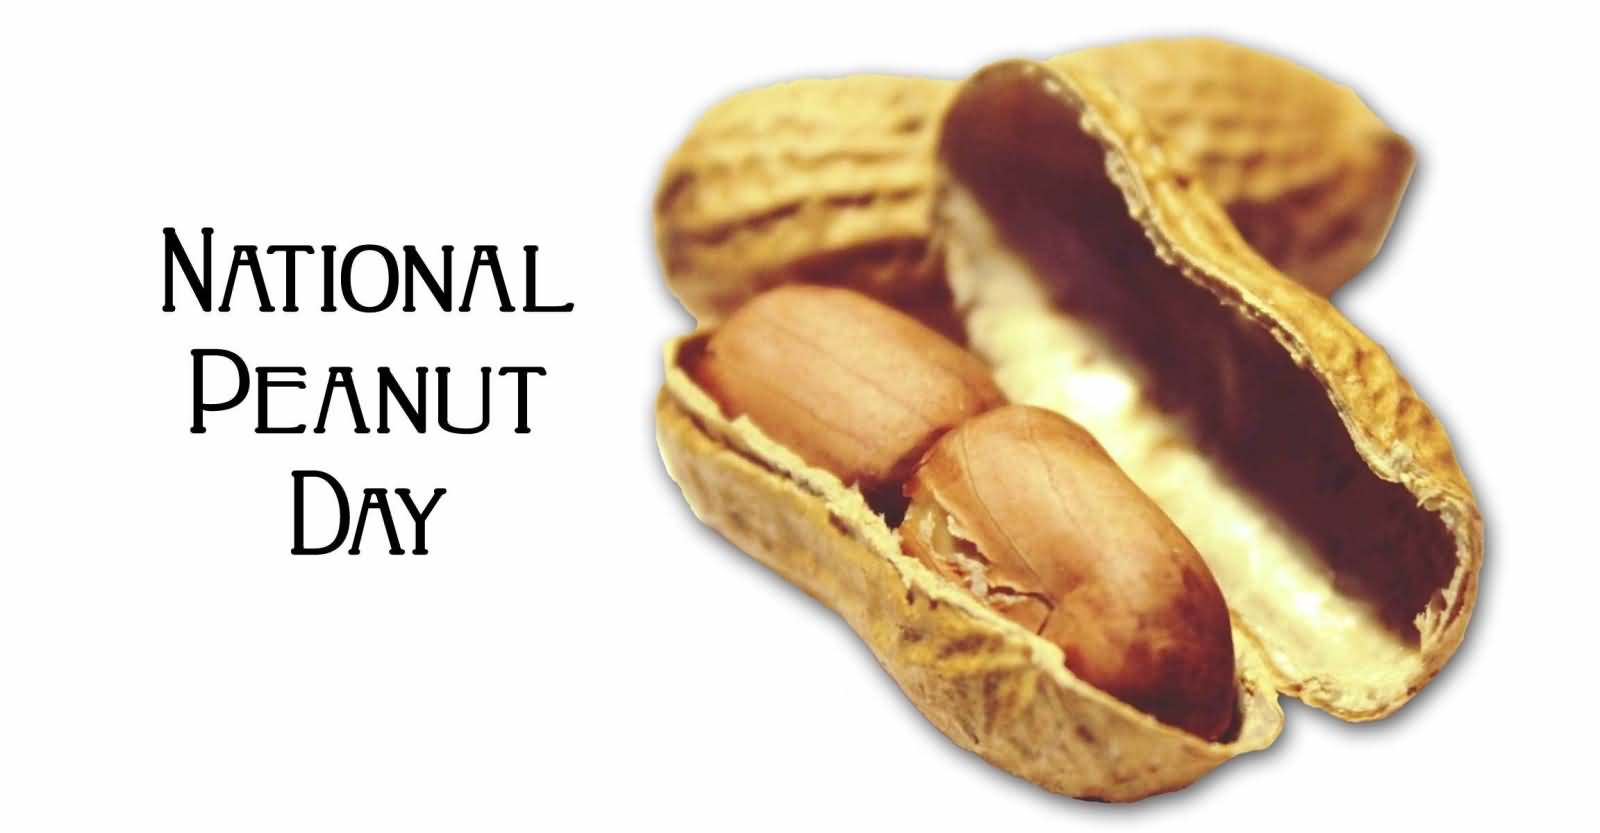 10 Best National Peanut Day Wish Ideas On Askdieas